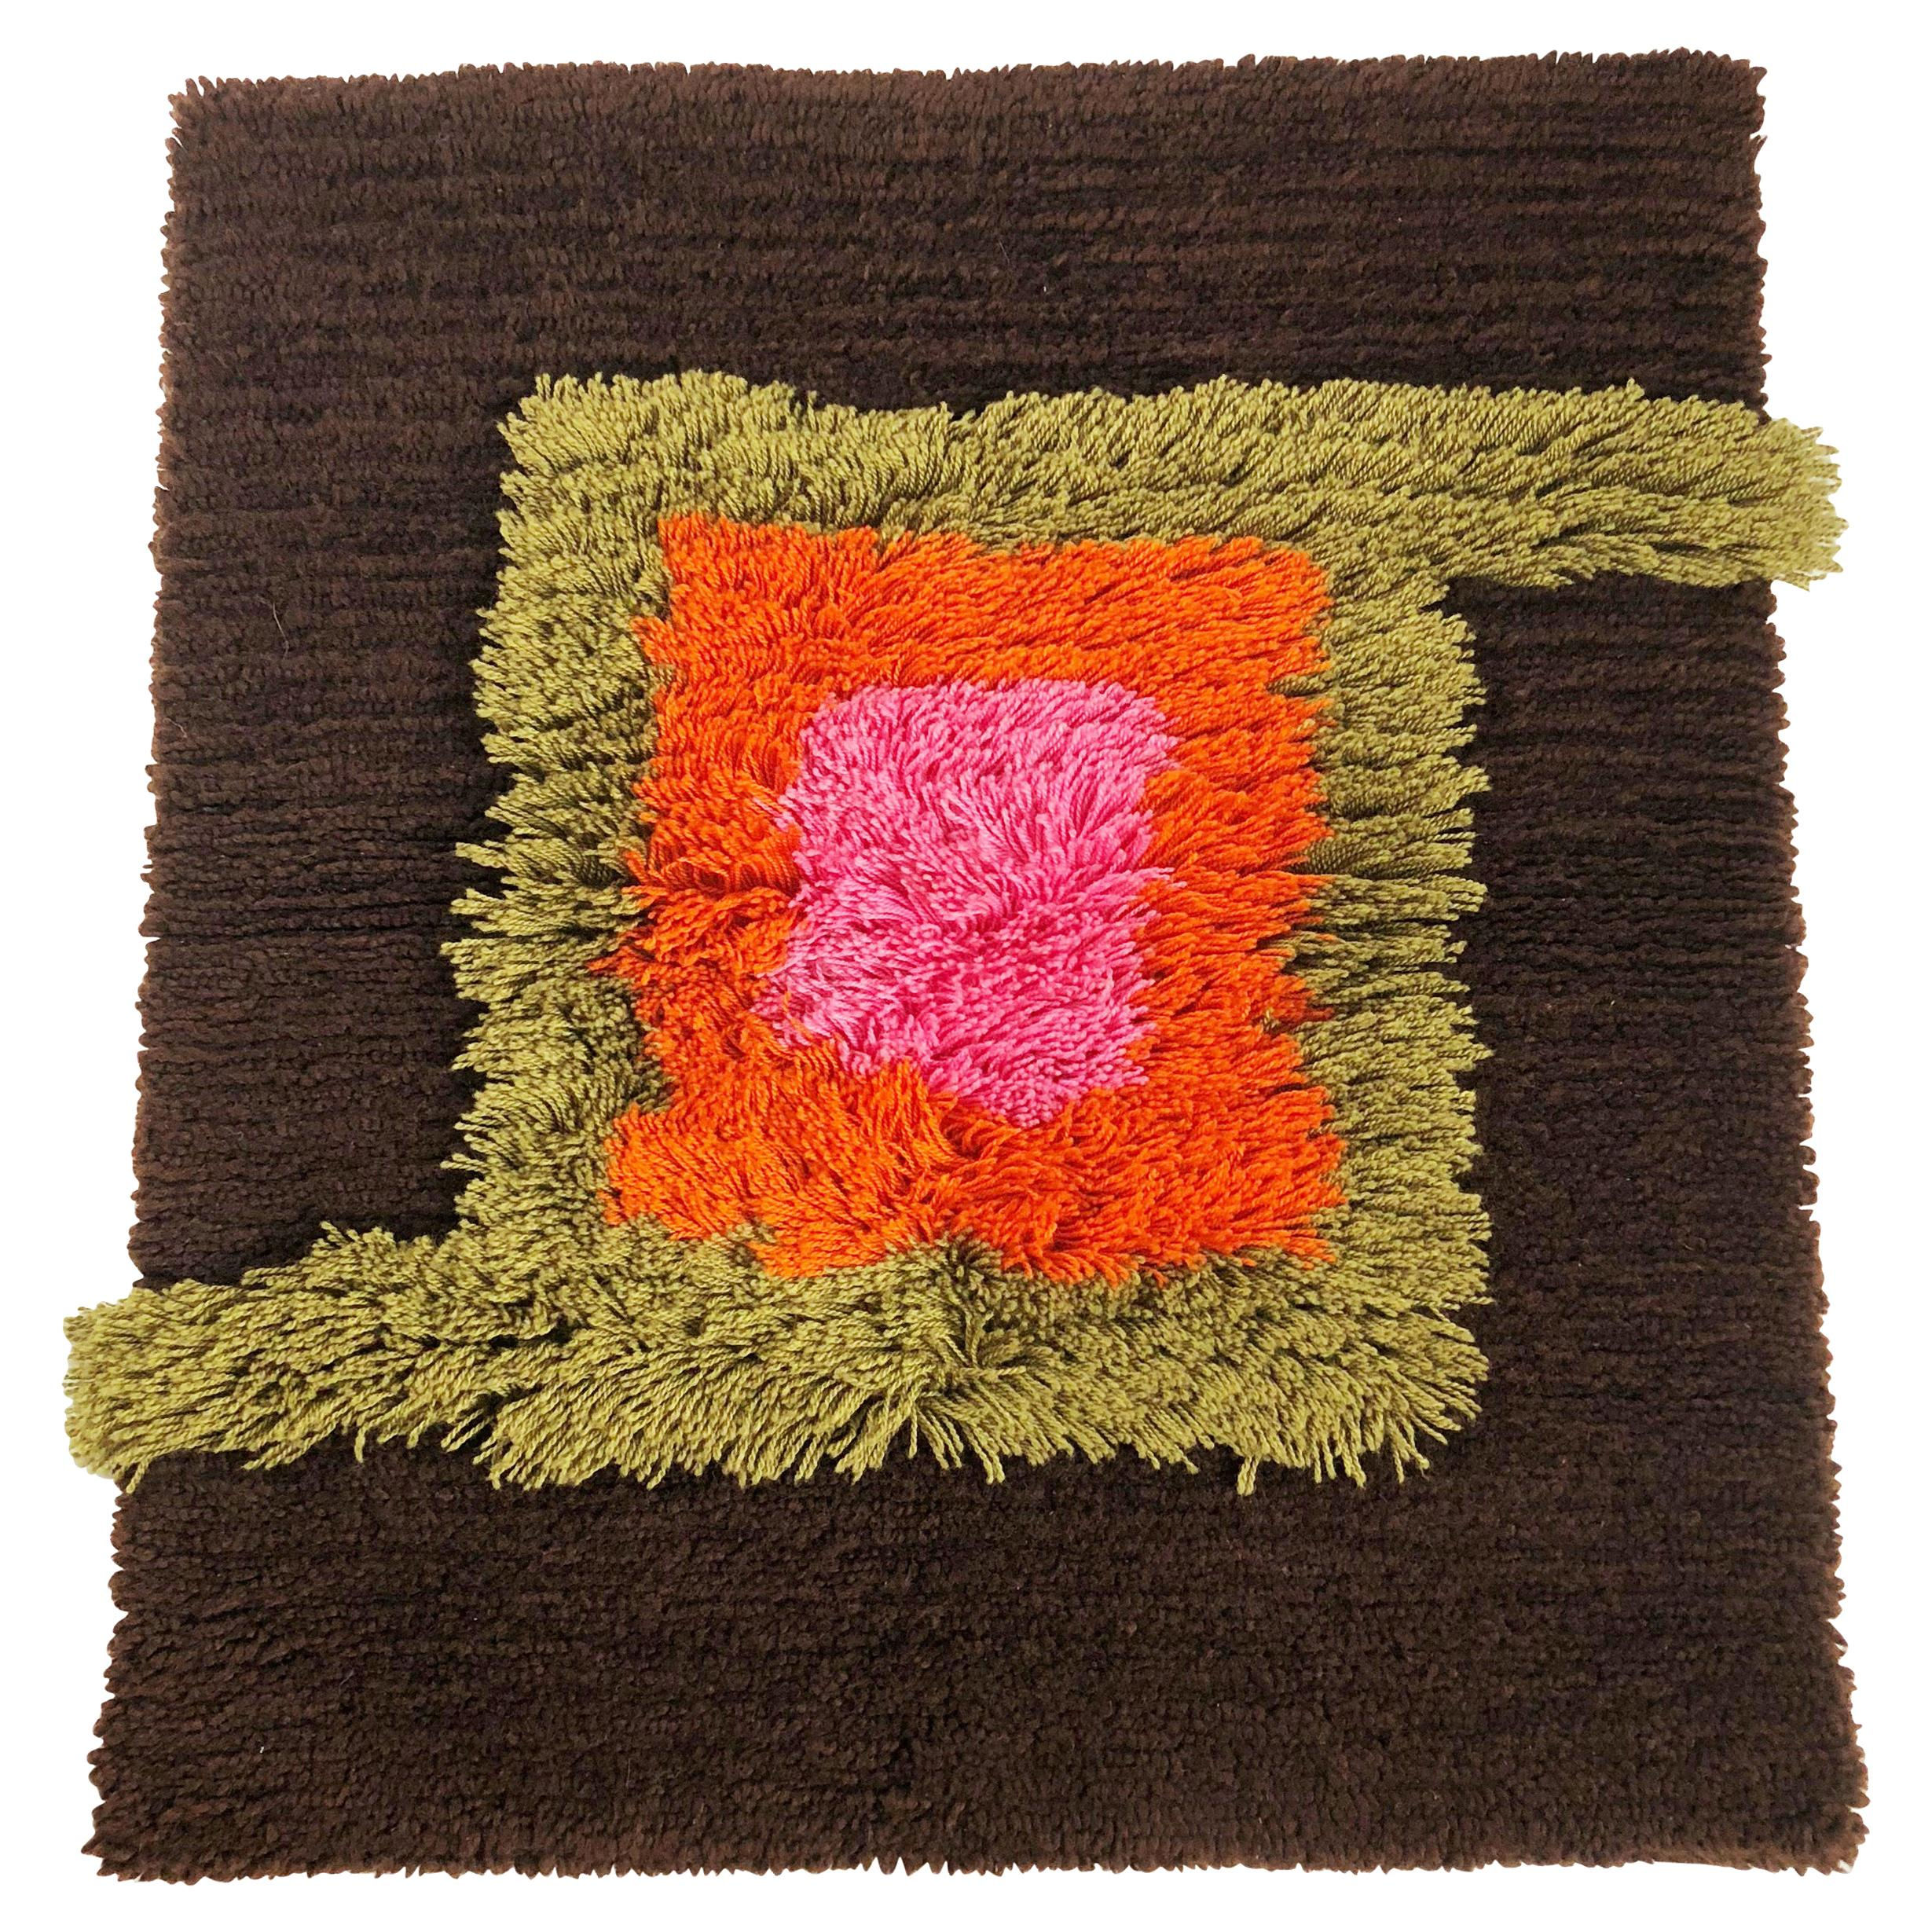 Modernist German Wall Rug by Cromwell Tefzet, Design by S. Doege, Germany, 1970s